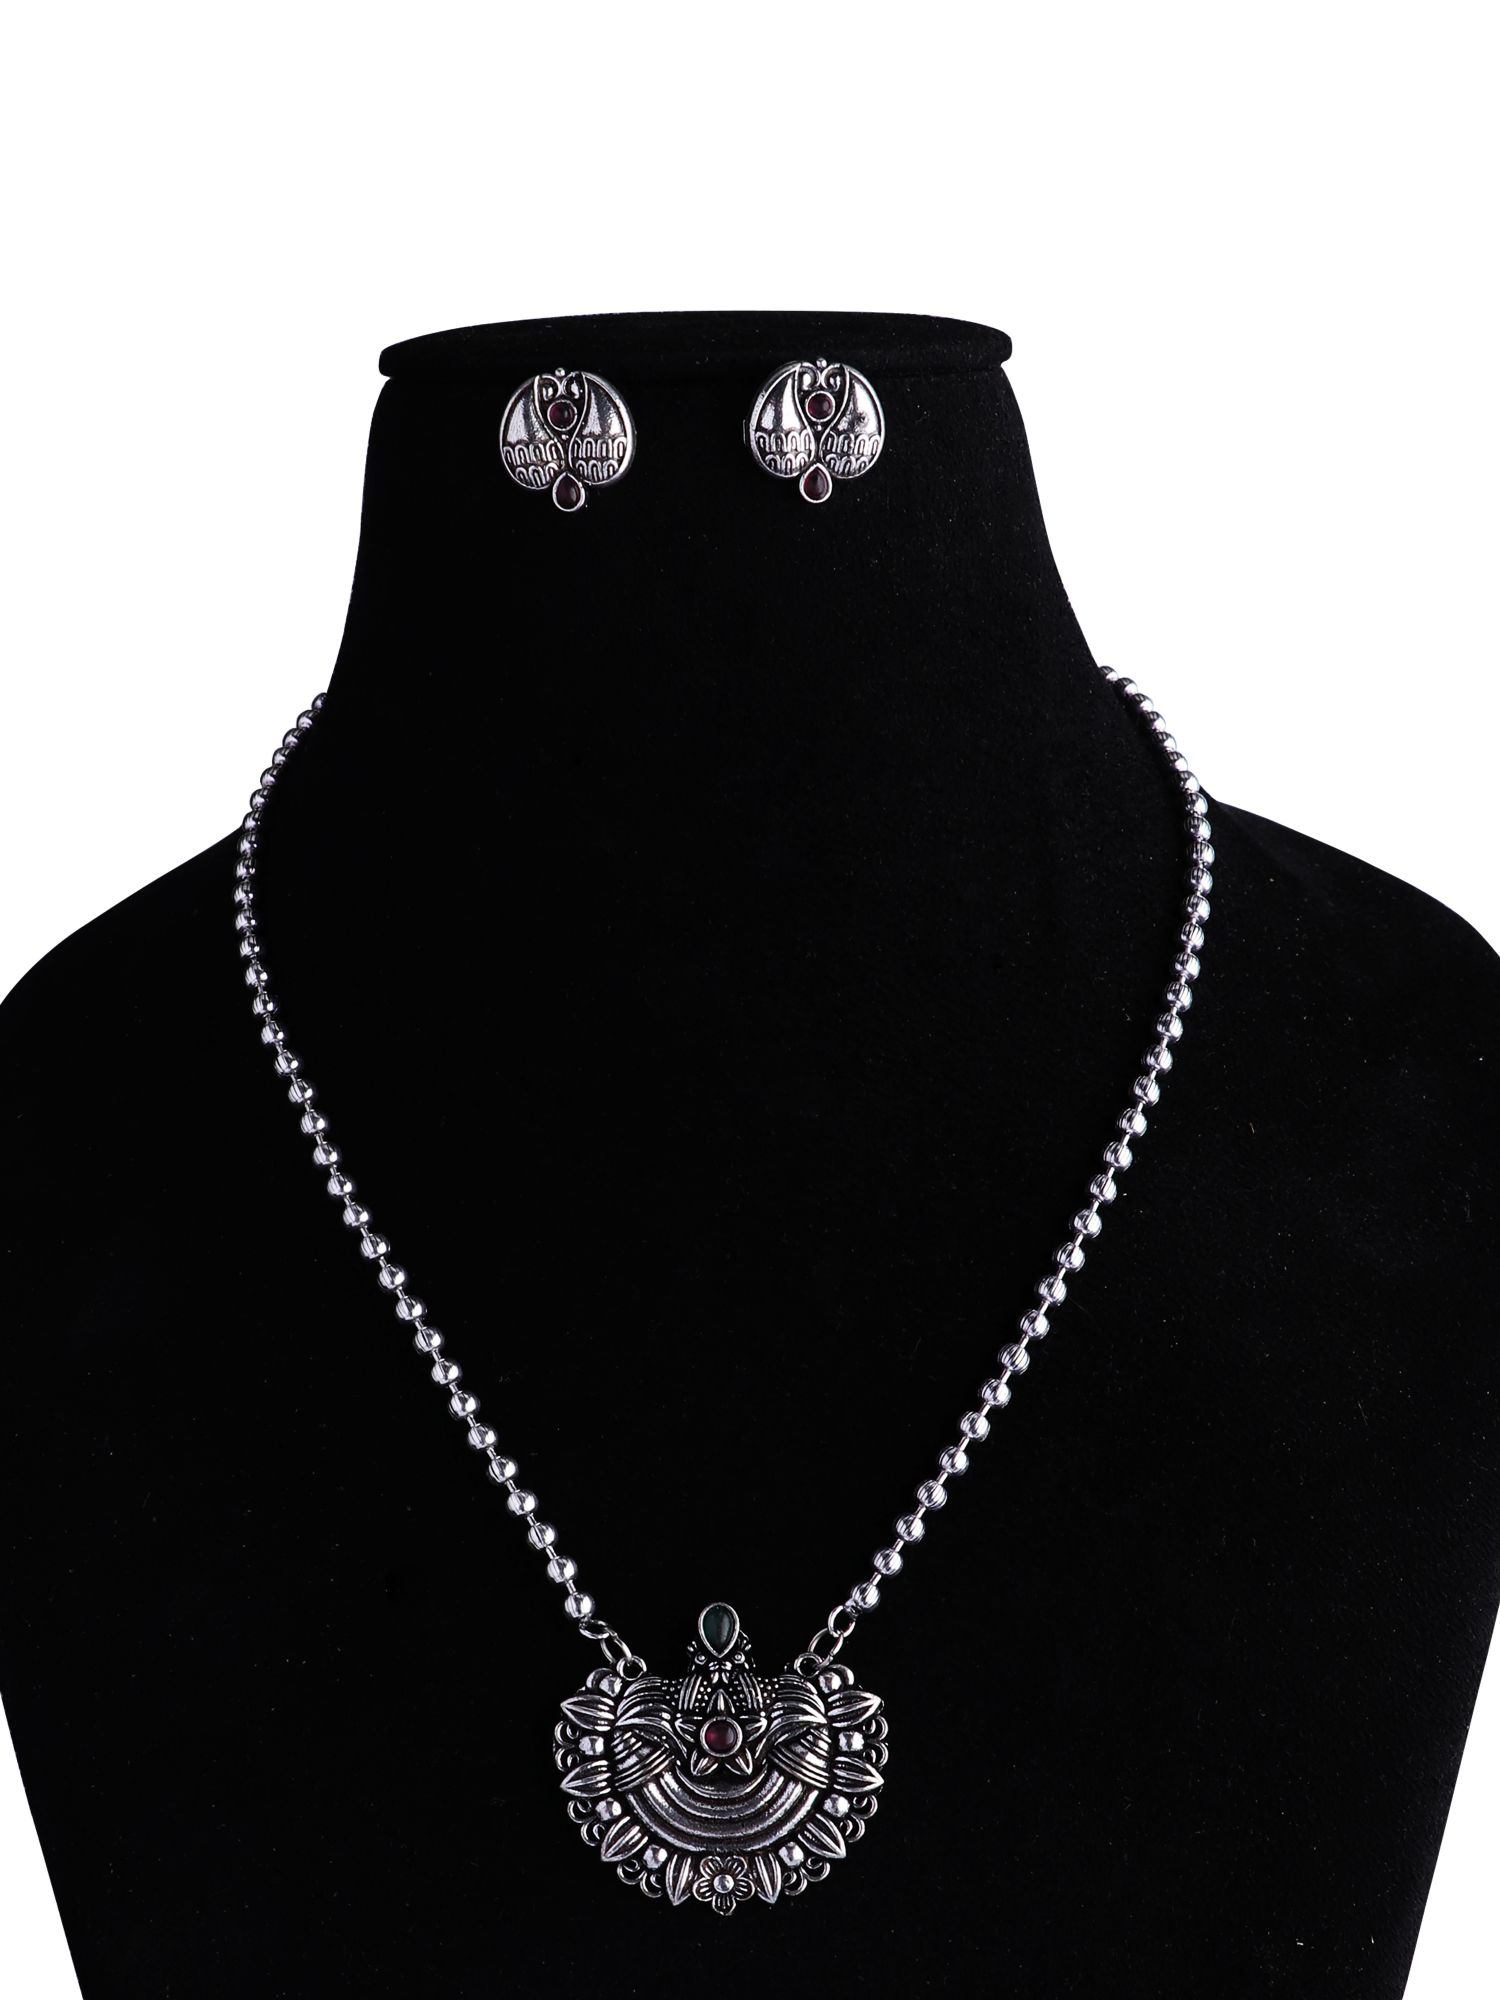 Oxidised Sliver Ball Chain Necklace Set